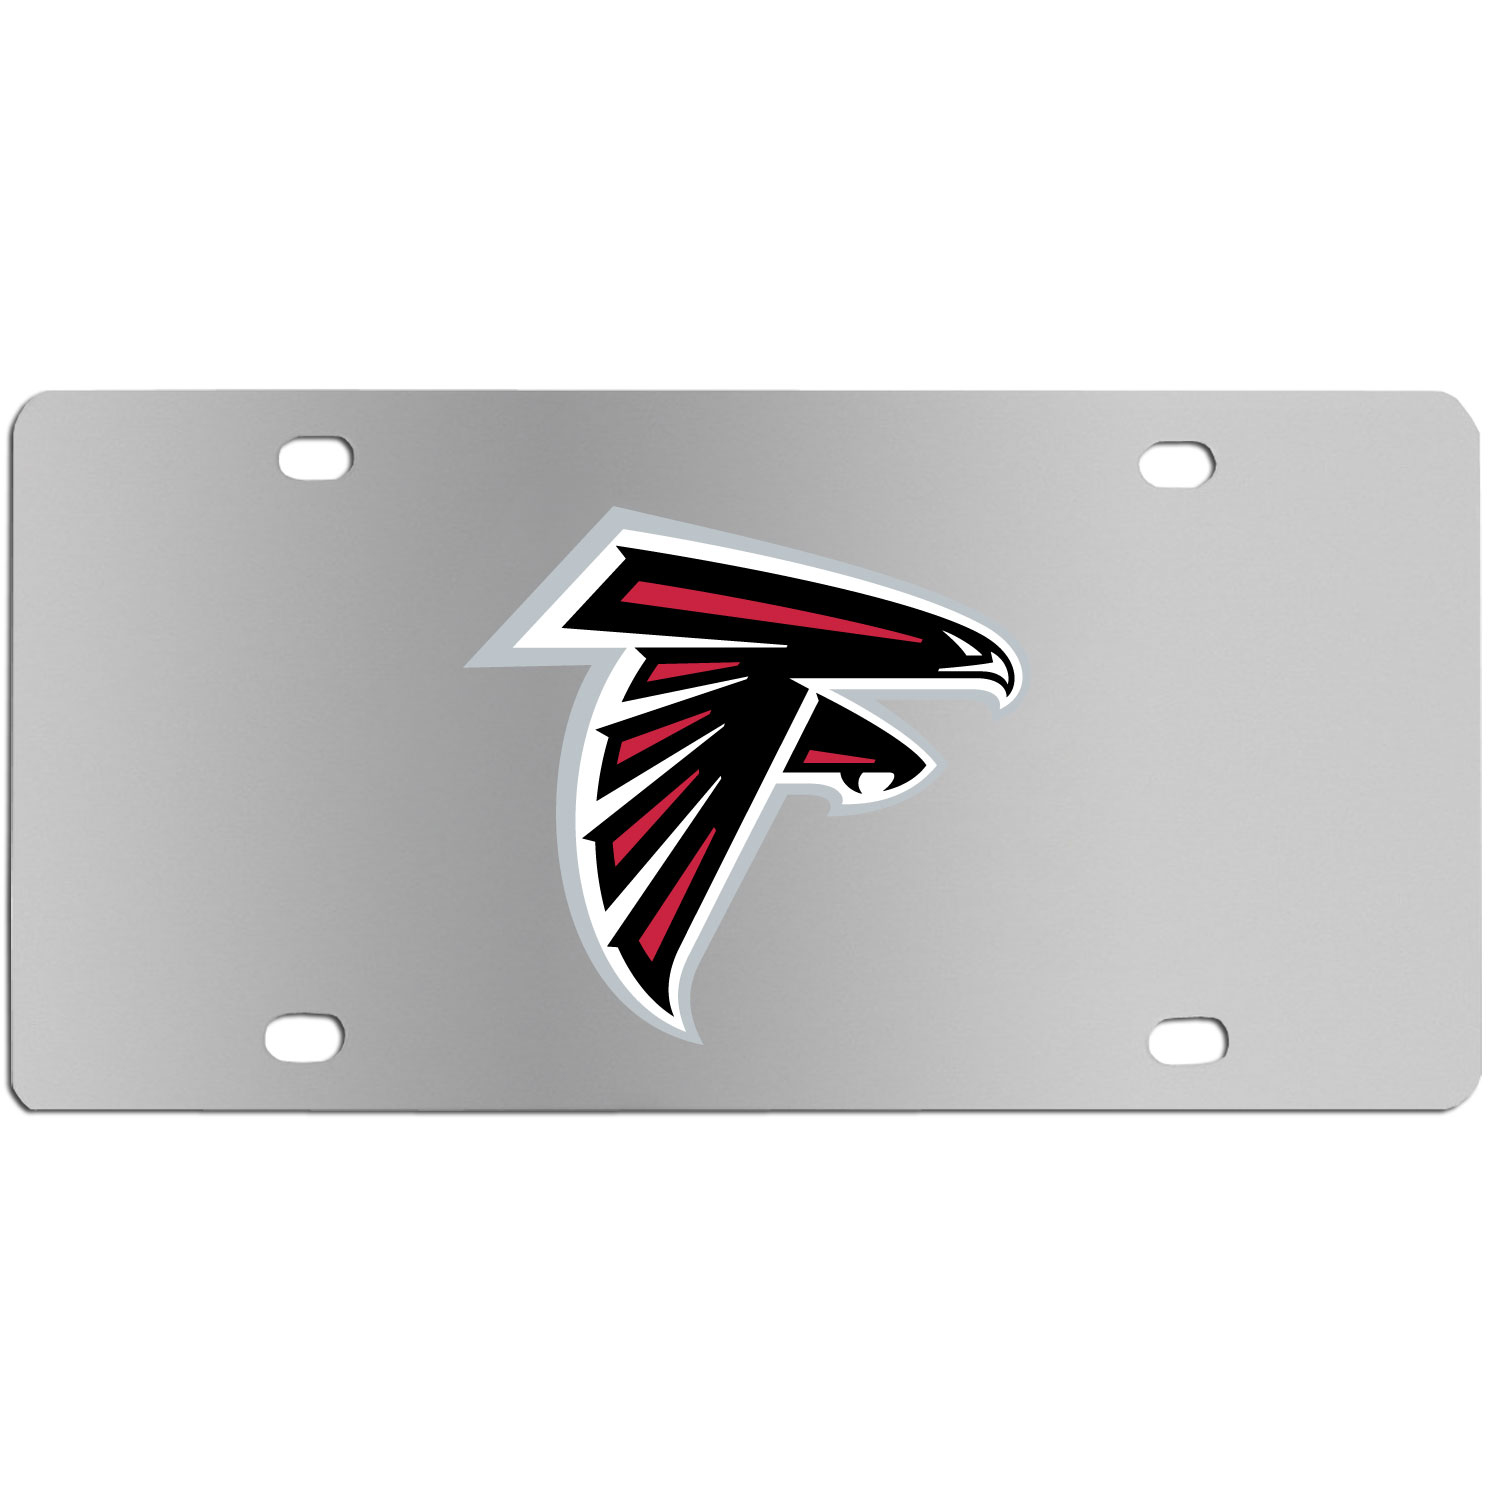 Atlanta Falcons Steel License Plate Wall Plaque - This high-quality stainless steel license plate features a detailed team logo on a the polished surface. The attractive plate is perfect for wall mounting in your home or office to become the perfect die-hard Atlanta Falcons fan decor.